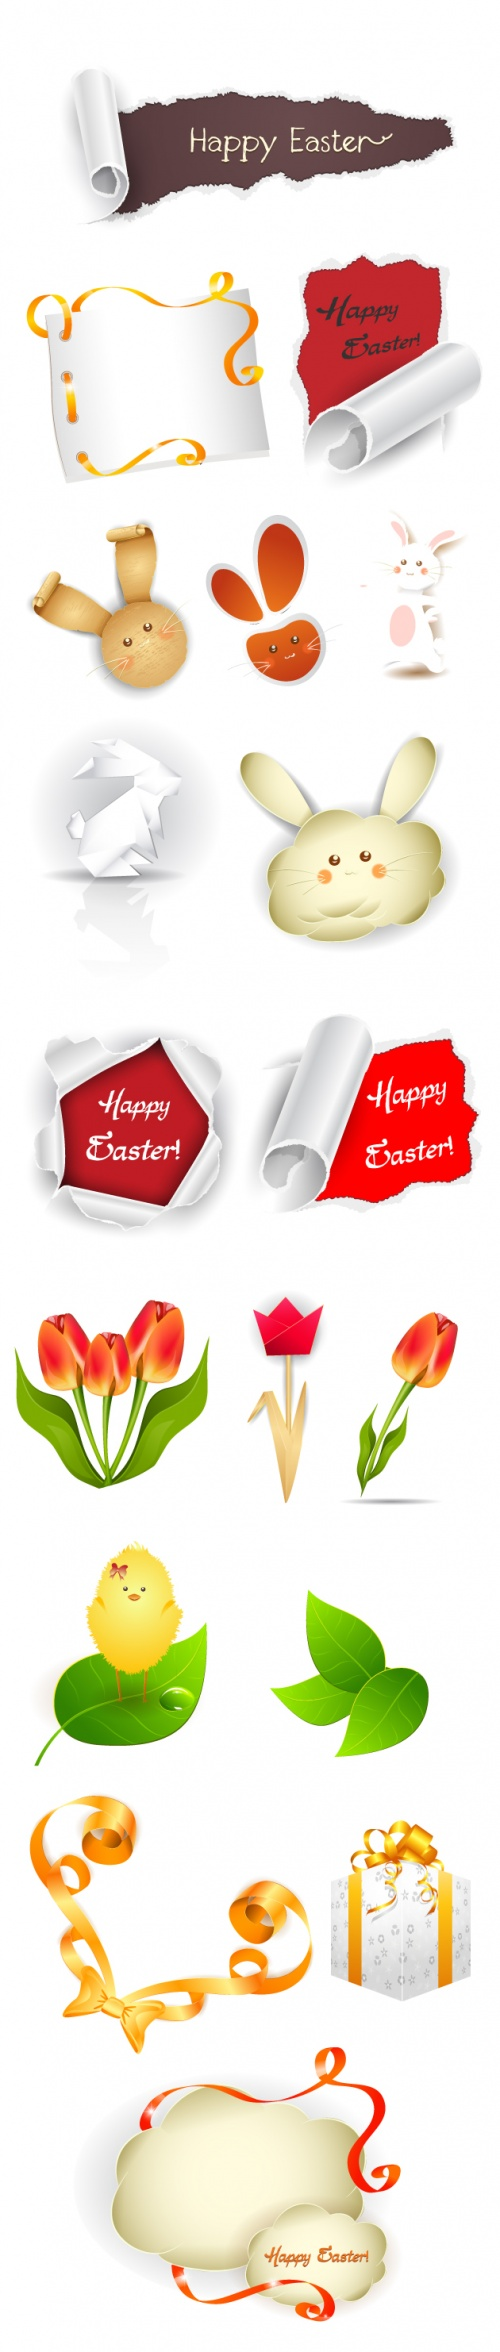 Designtnt - Vector Easter Elements Set 2